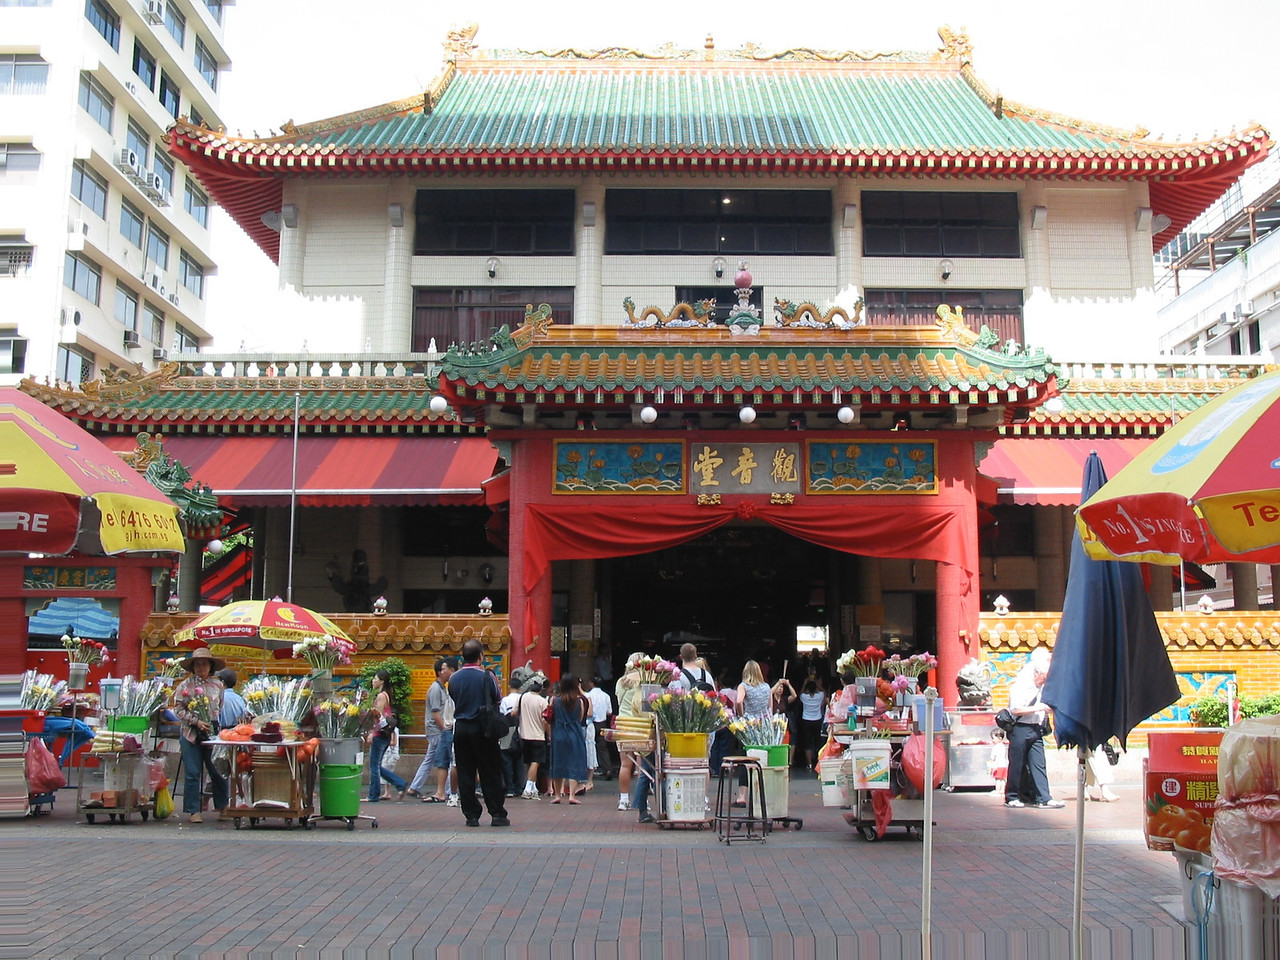 Kwan Im Thong Hood Cho Temple is a traditional Chinese temple situated at Waterloo Street. The temple has existed since 1884 at its present location with a reconstruction in 1895 and 1982.